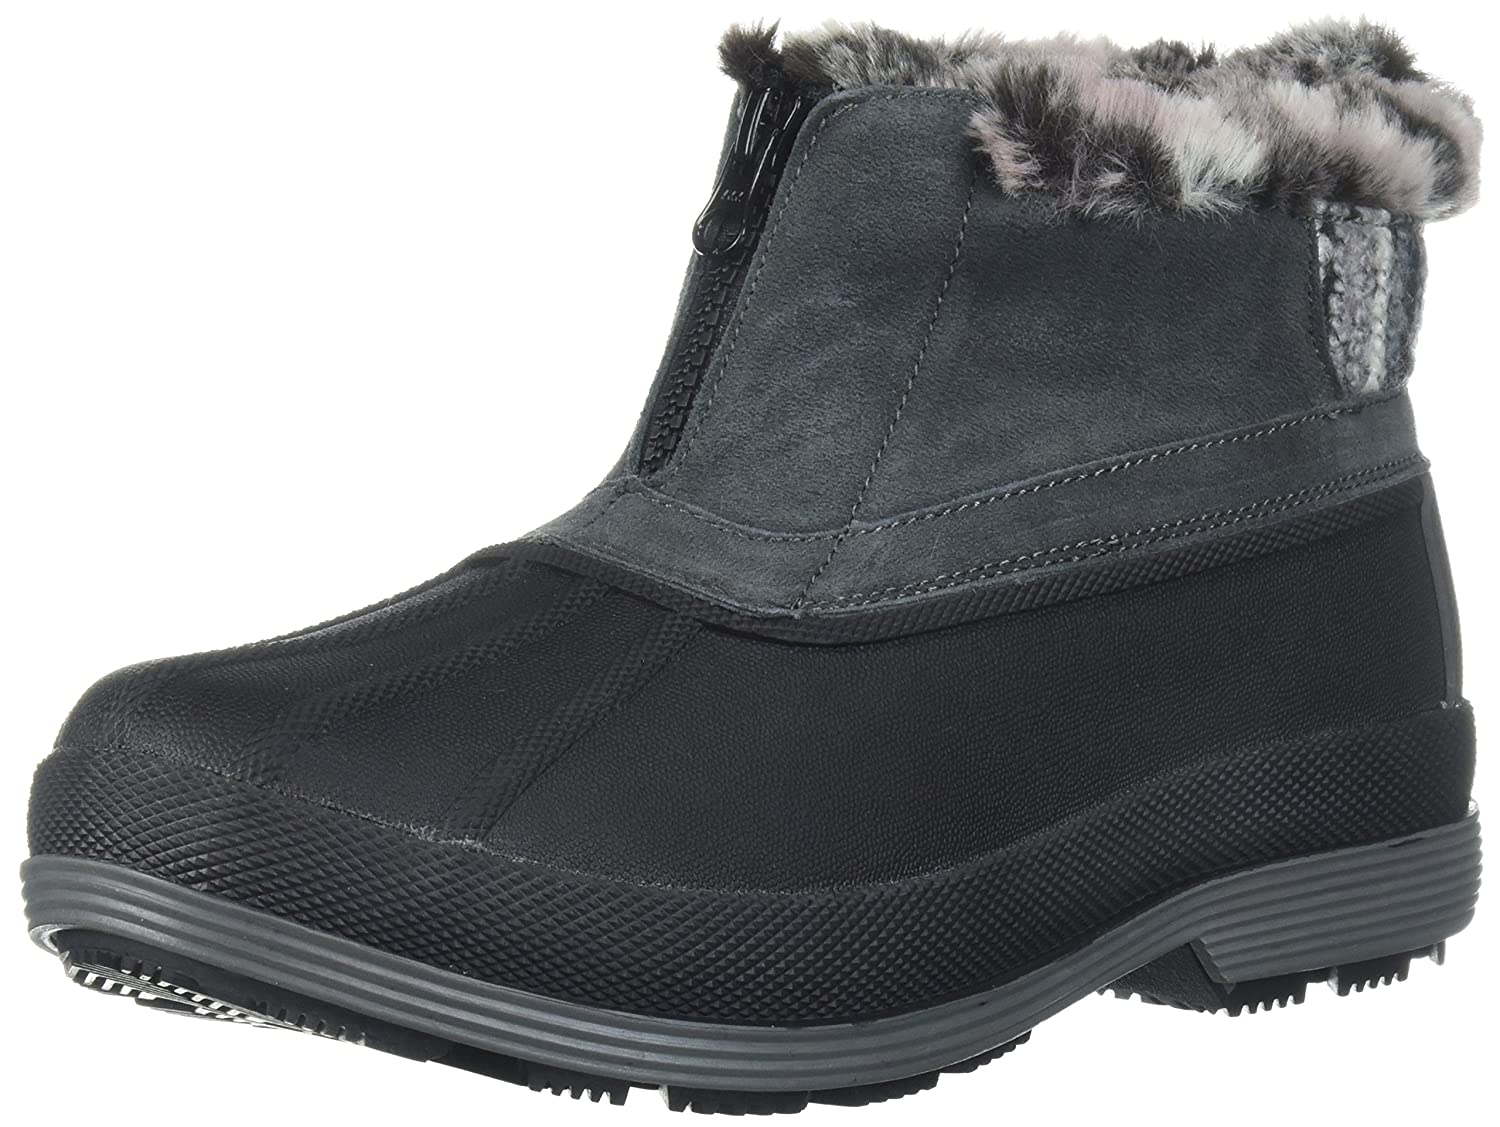 Propet Women's Lumi Ankle Zip Snow Boot B01N7CQOKU 7.5 B(M) US|Grey